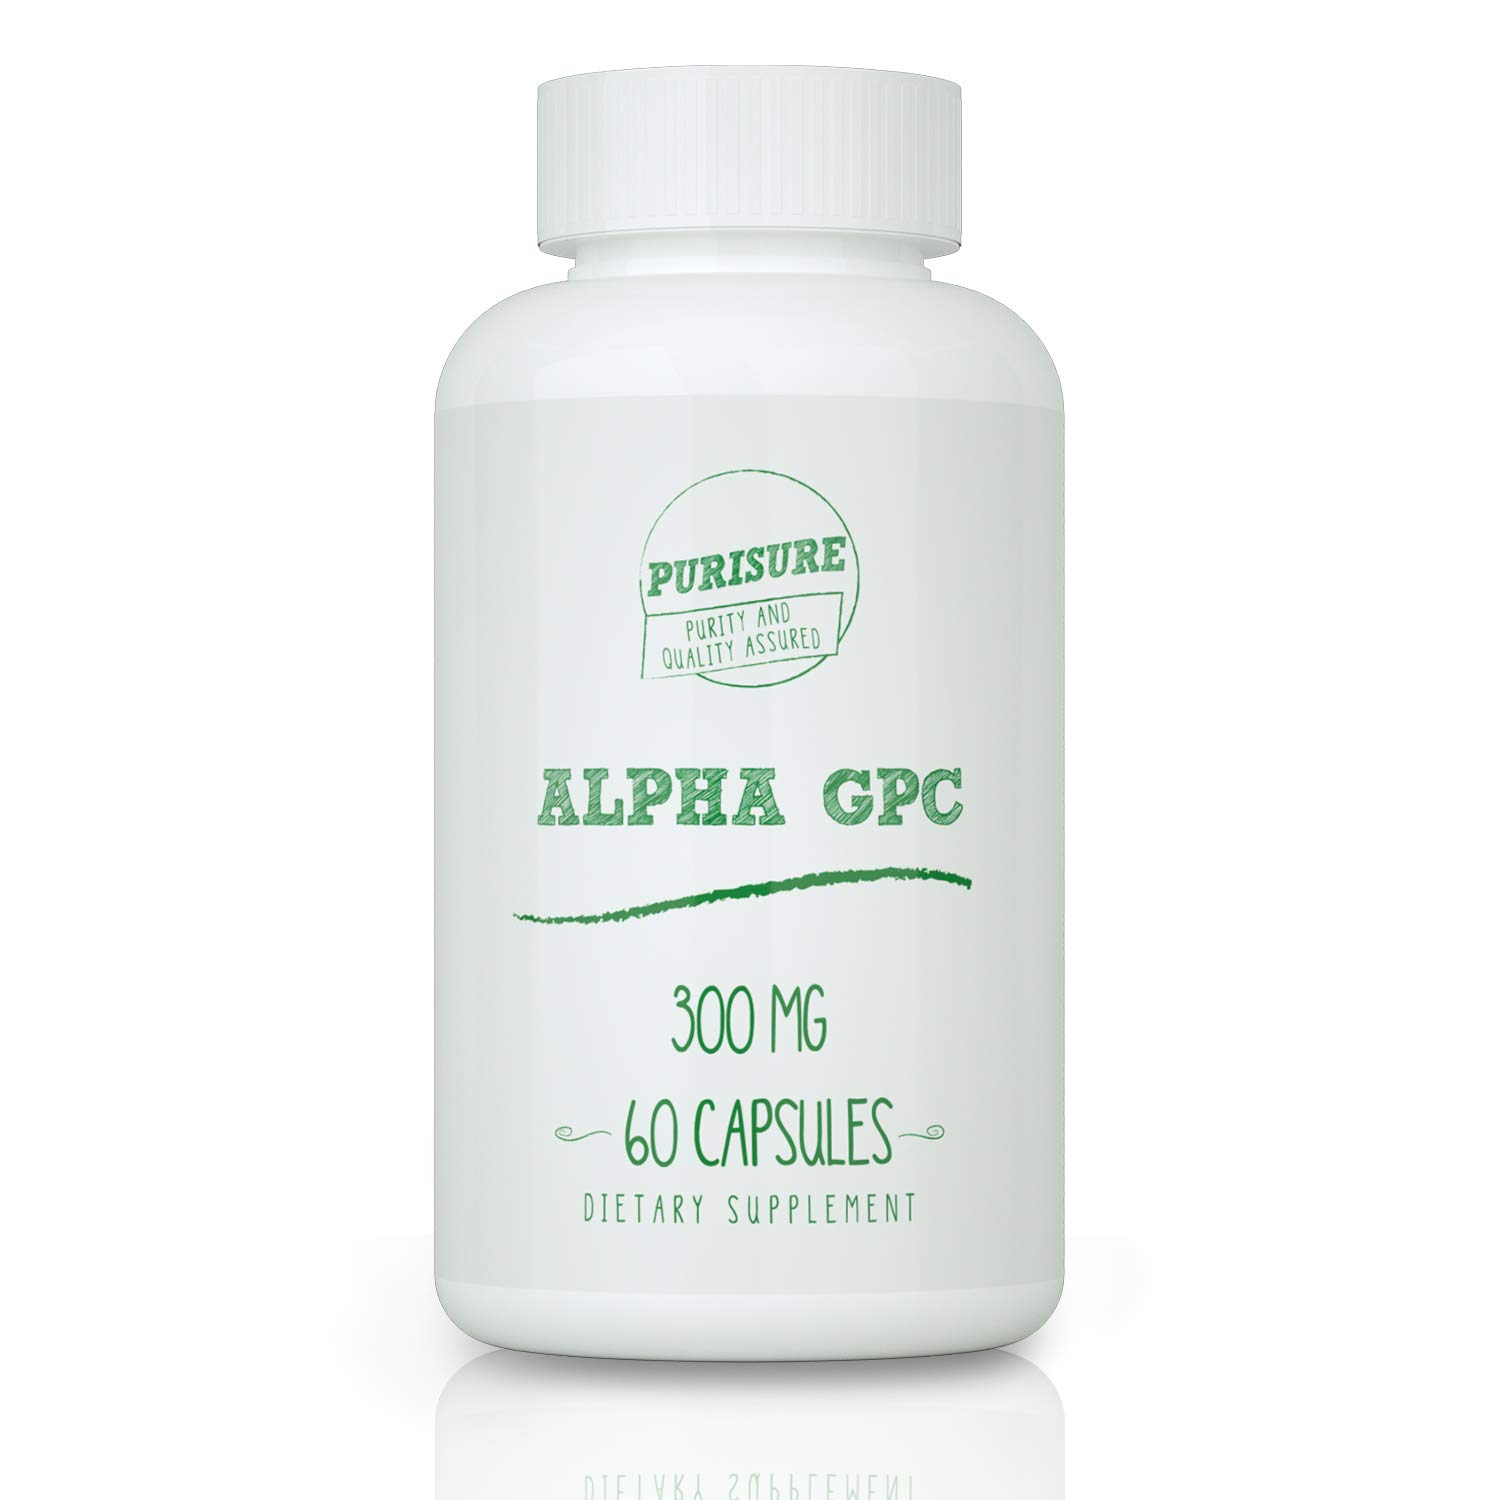 Purisure Alpha GPC Capsules   Nootropic   Cognitive Enhancer   Improves Memory, Learning, and Focus   Better Athletic Performance   300 mg 60 Capsules